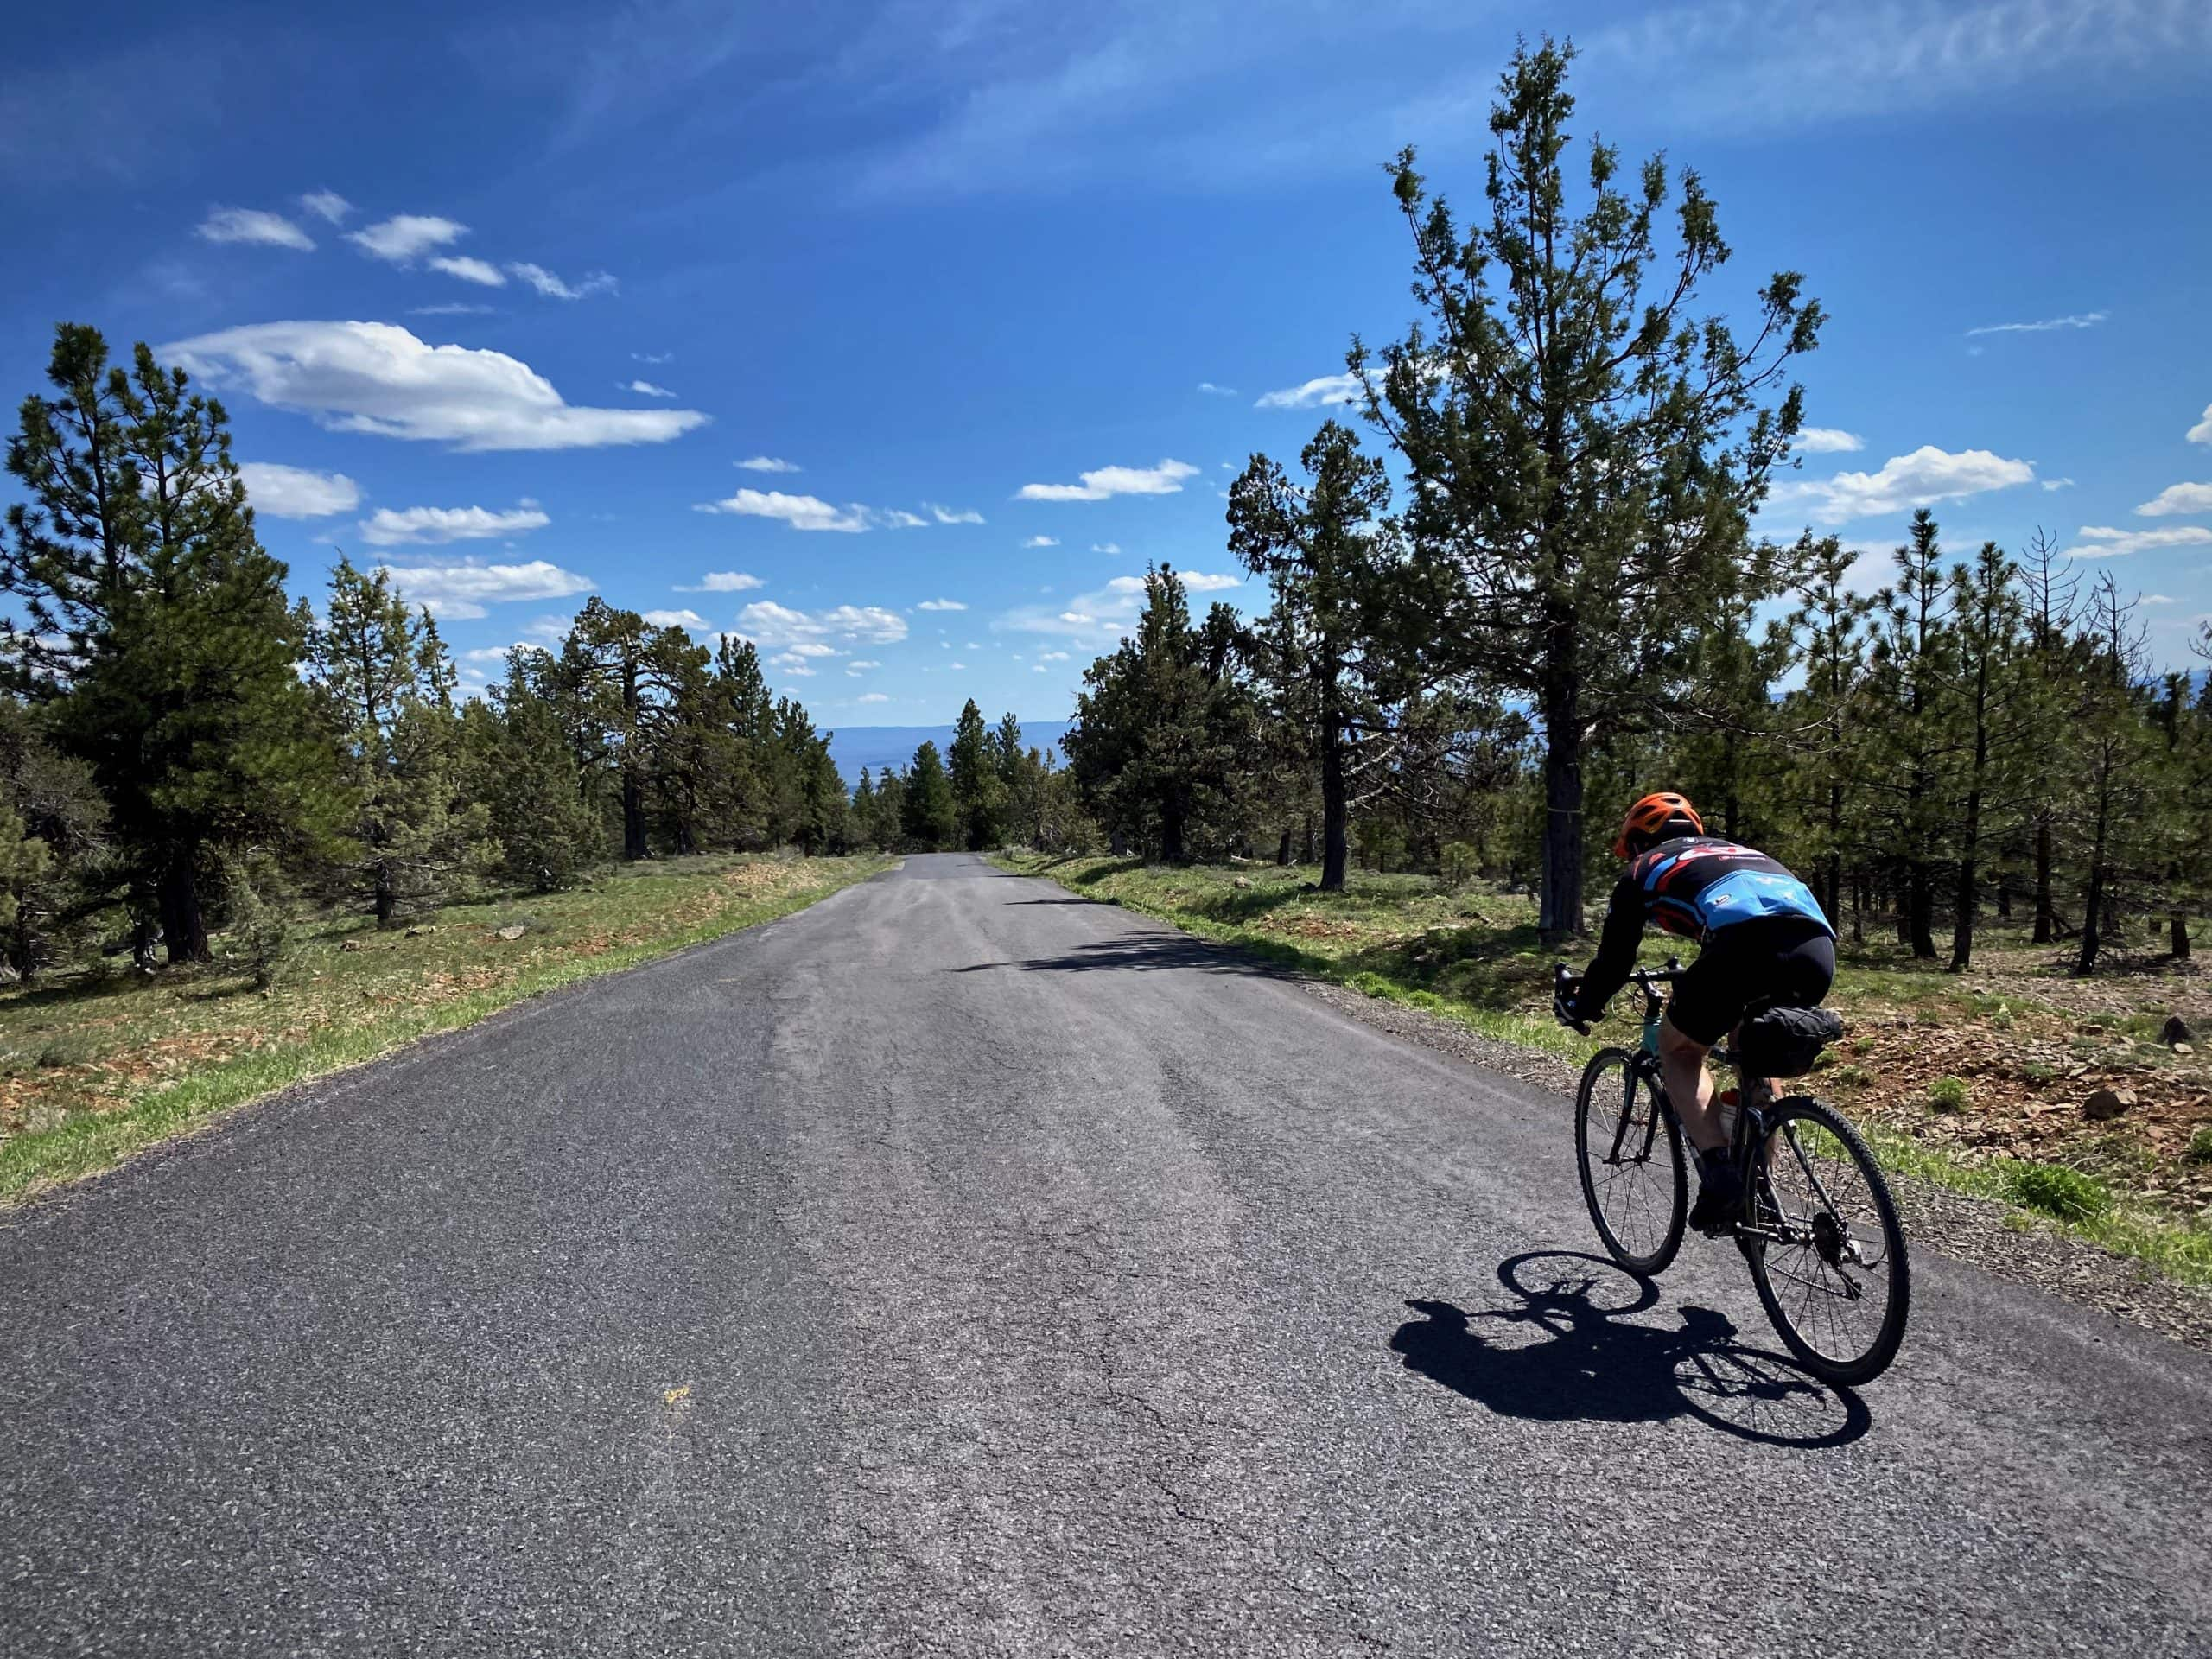 Cyclist beginning the paved descent on NF-42 in the Ochoco National forest near Paulina, OR.